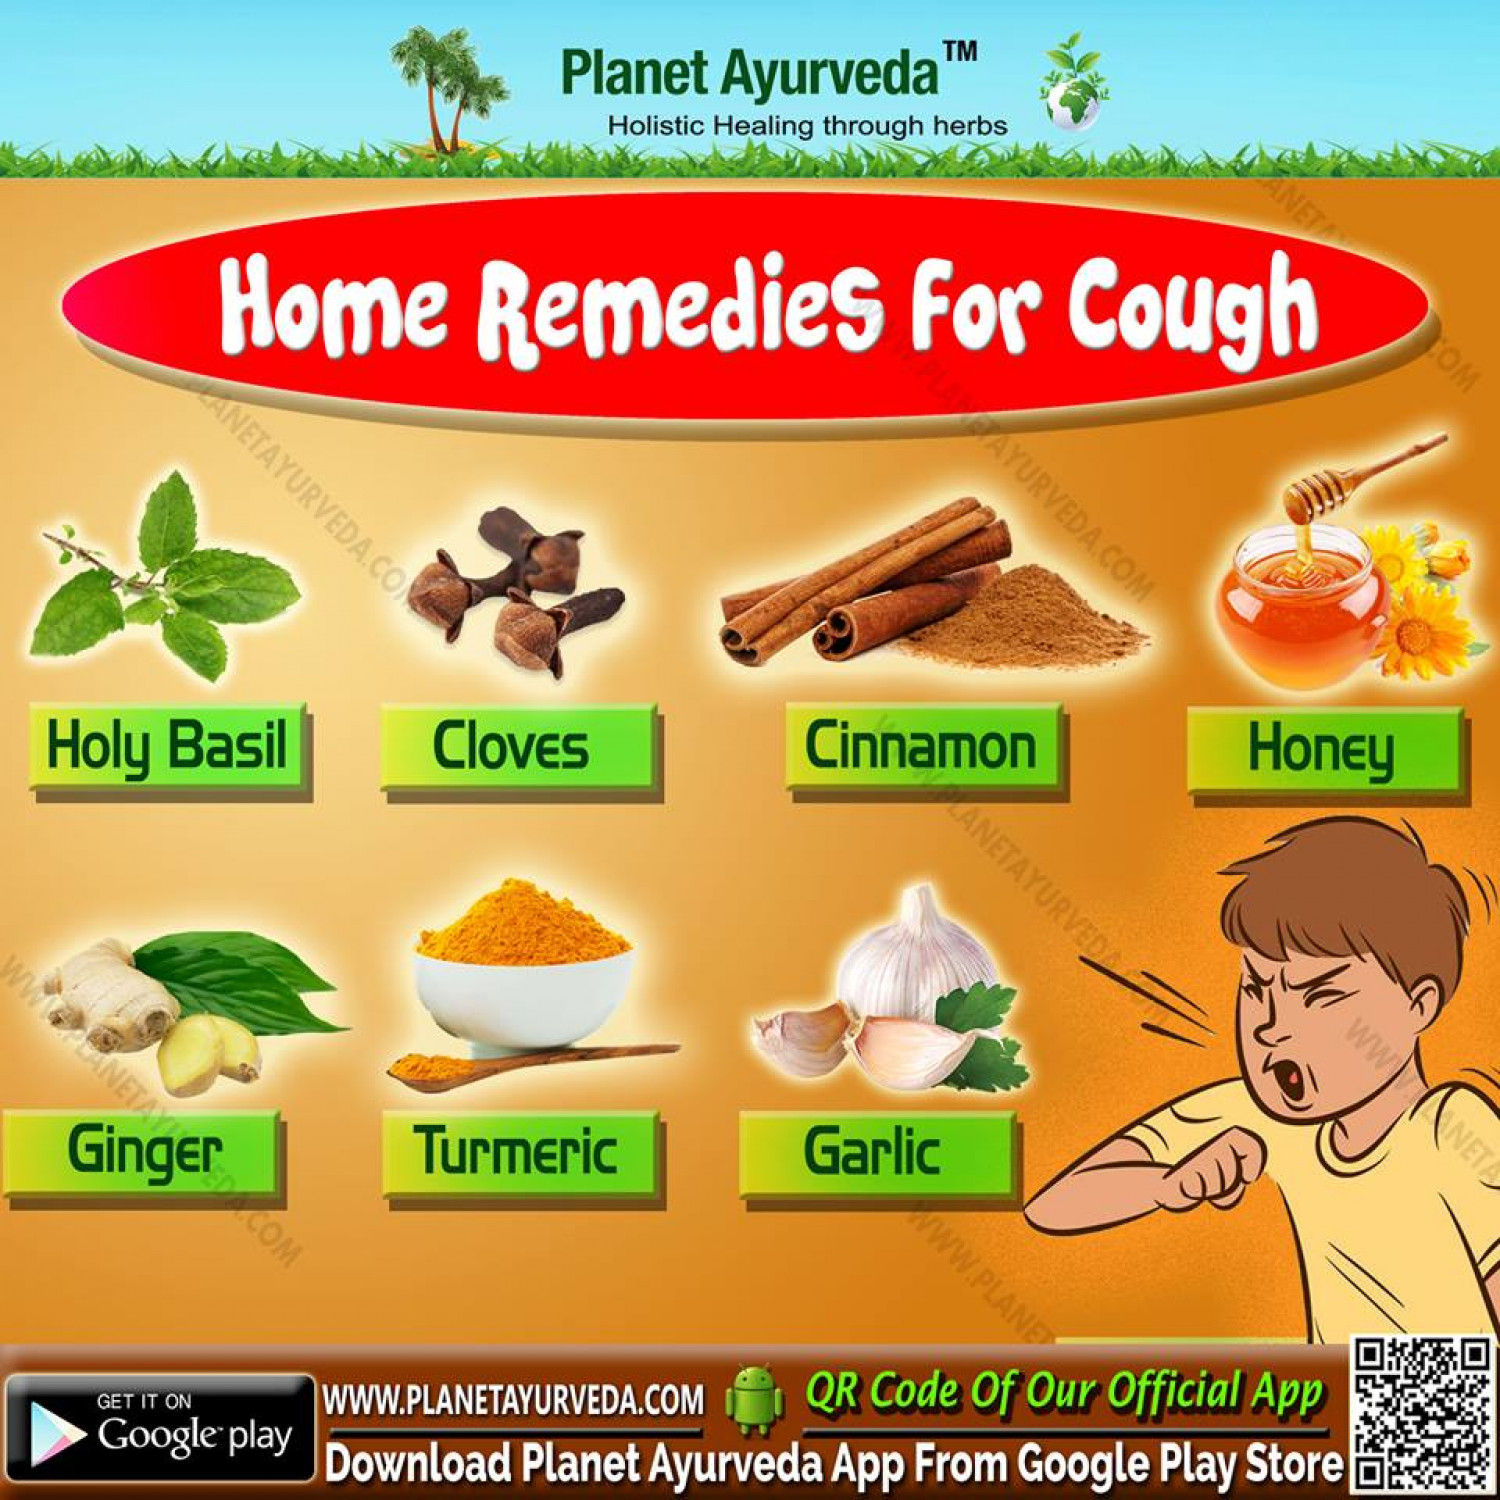 Ayurvedic Treatment and Home Remedies for Cough Infographic